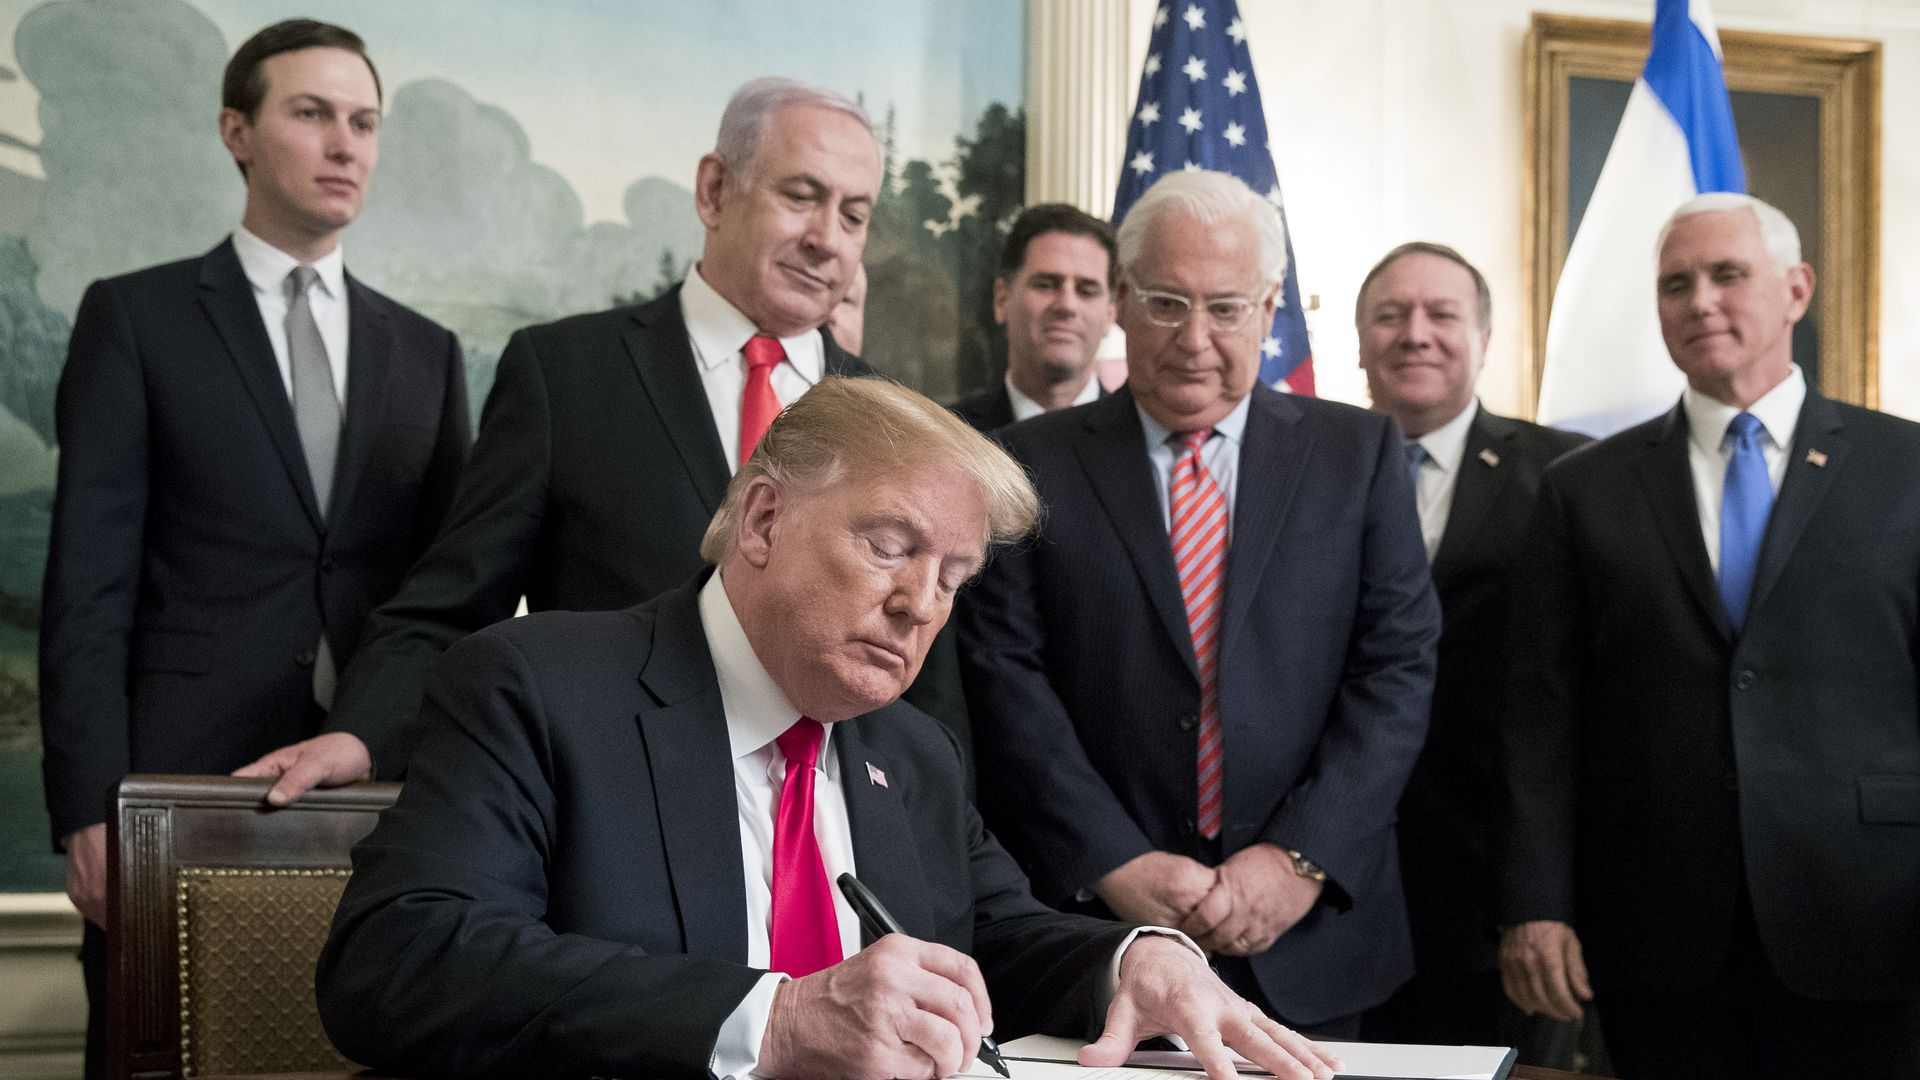 Trump signing a proclamation with Israeli leaders